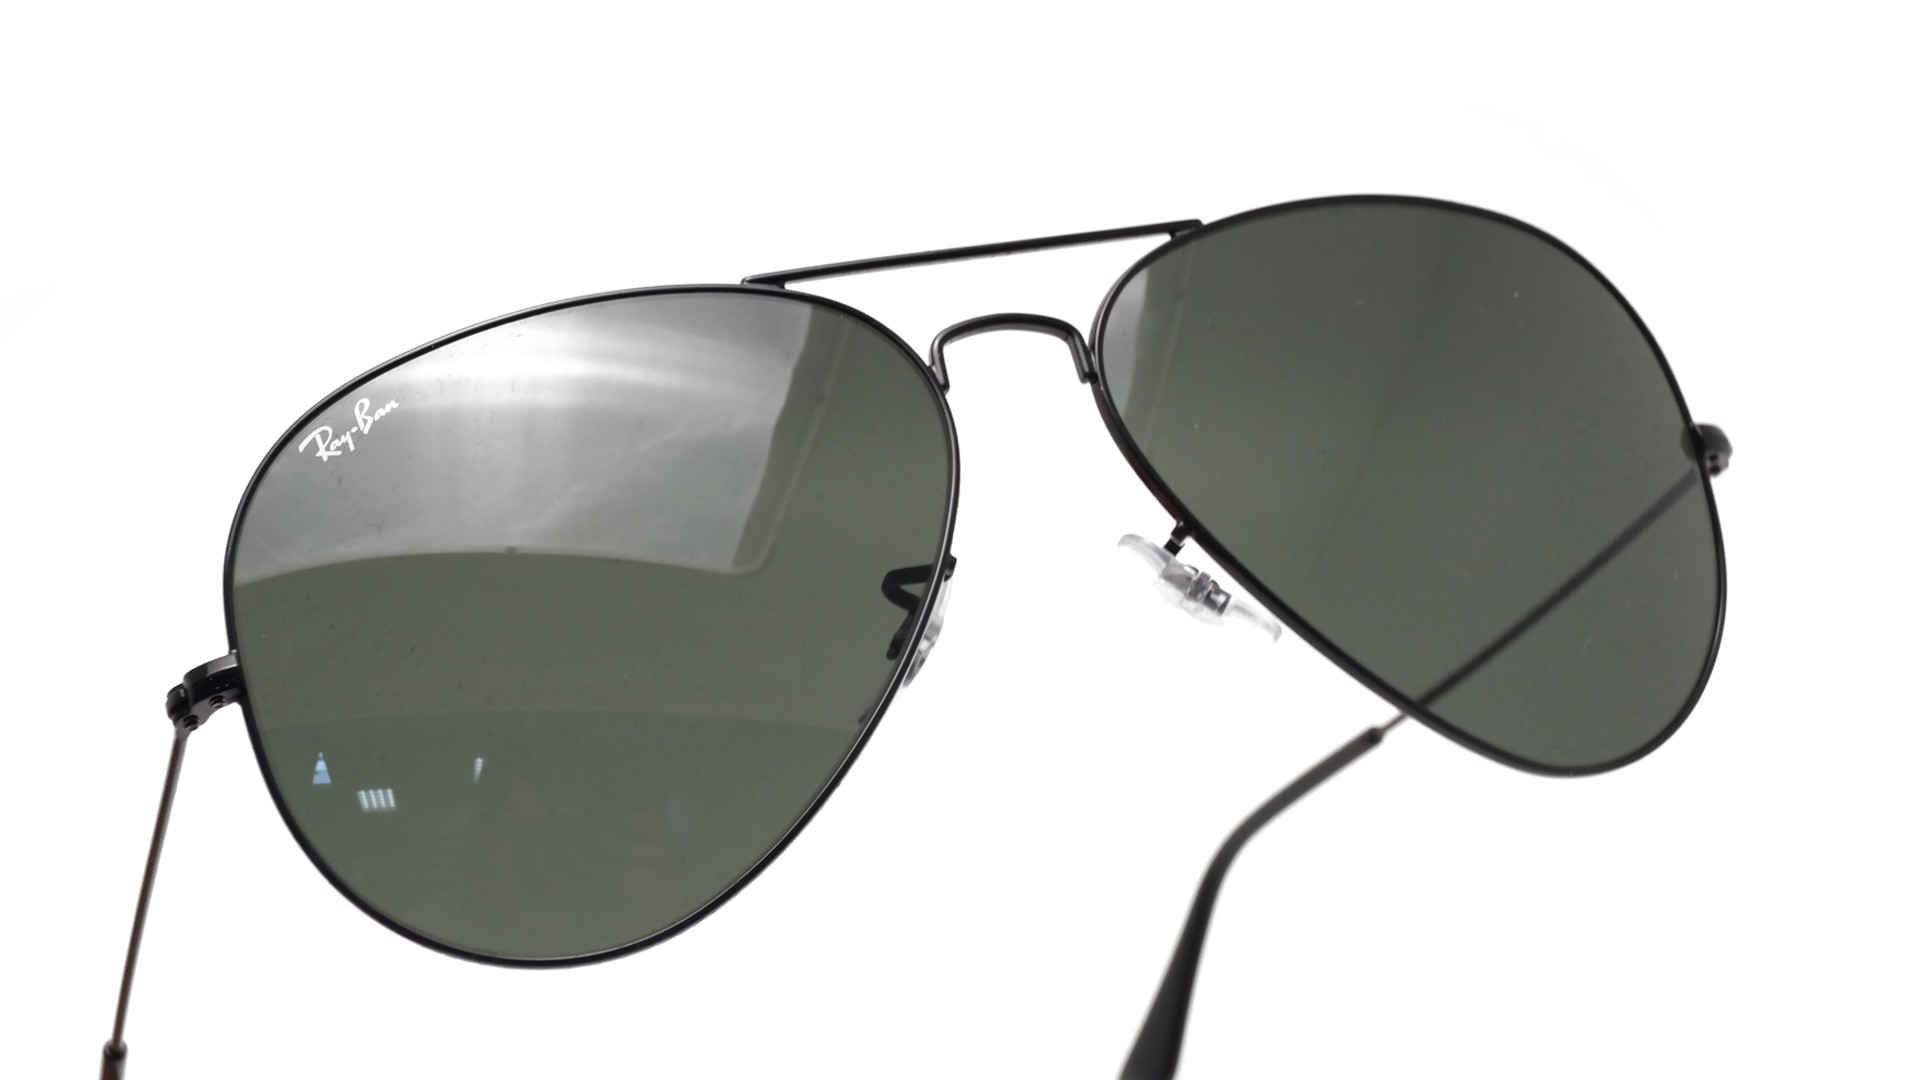 9283cec4572 Sunglasses Ray-Ban Aviator Large Metal II Black G-15 RB3026 L2821 62-14  Large